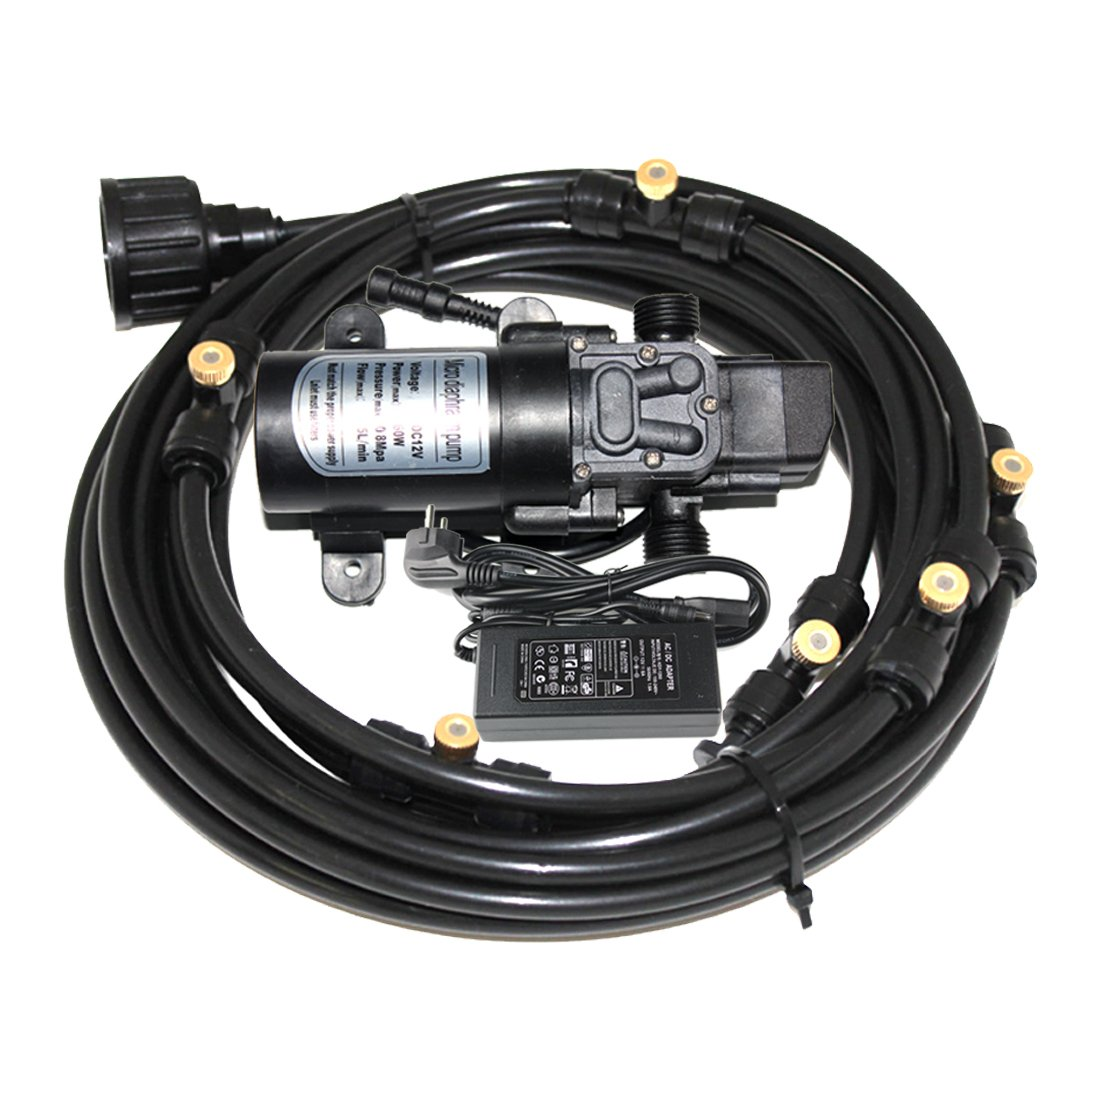 12m (40feet) Length Misting Cooling System With 12V 60W 5L/min Micro Washdown High Pressure Self Priming Diaphragm Pump by Hylaea